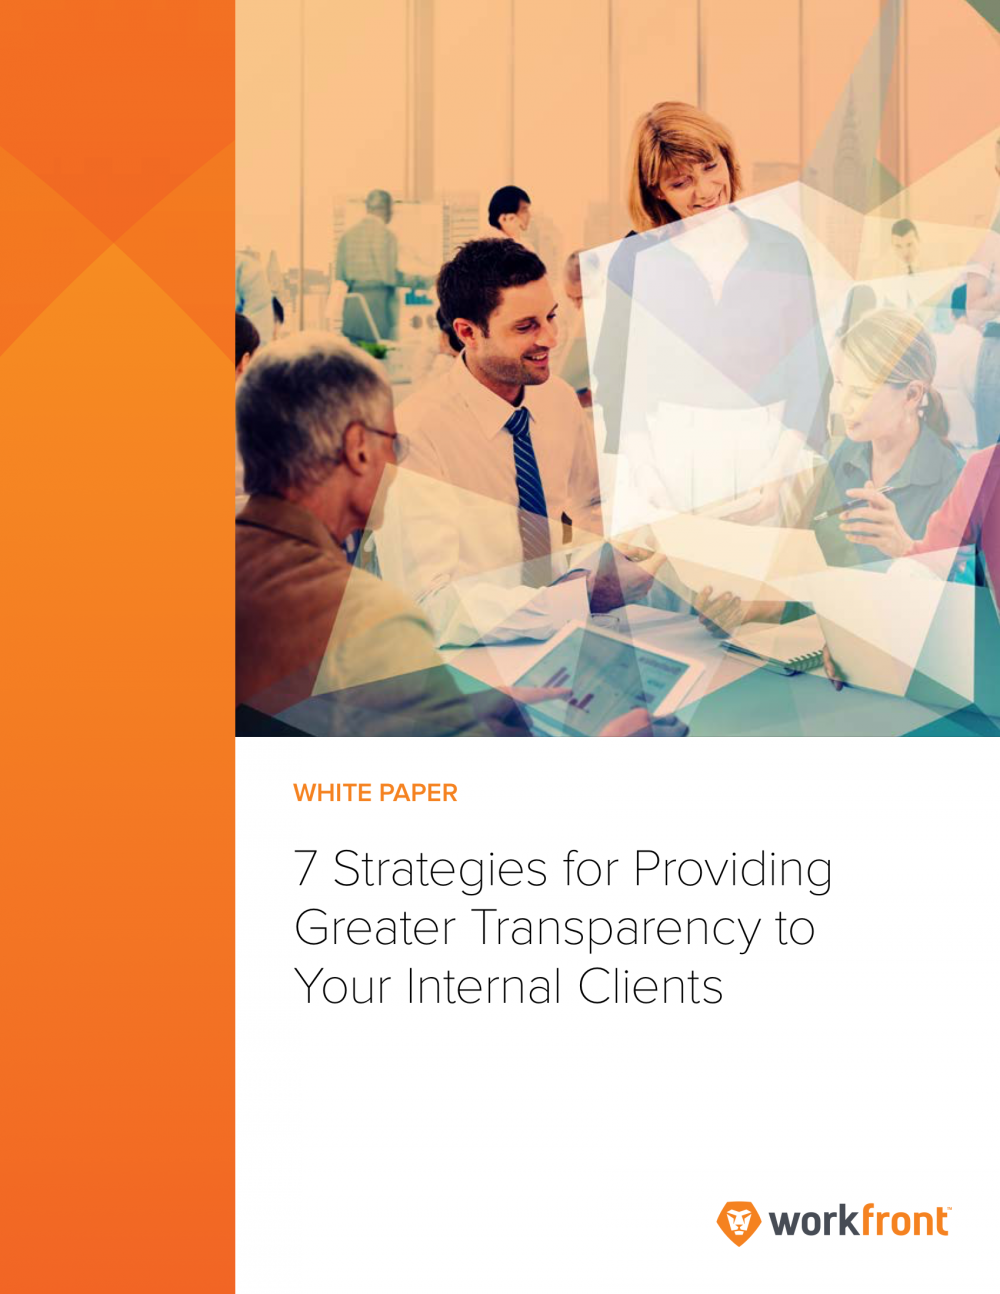 7 Strategies for Providing Greater Transparency to Your Internal Clients